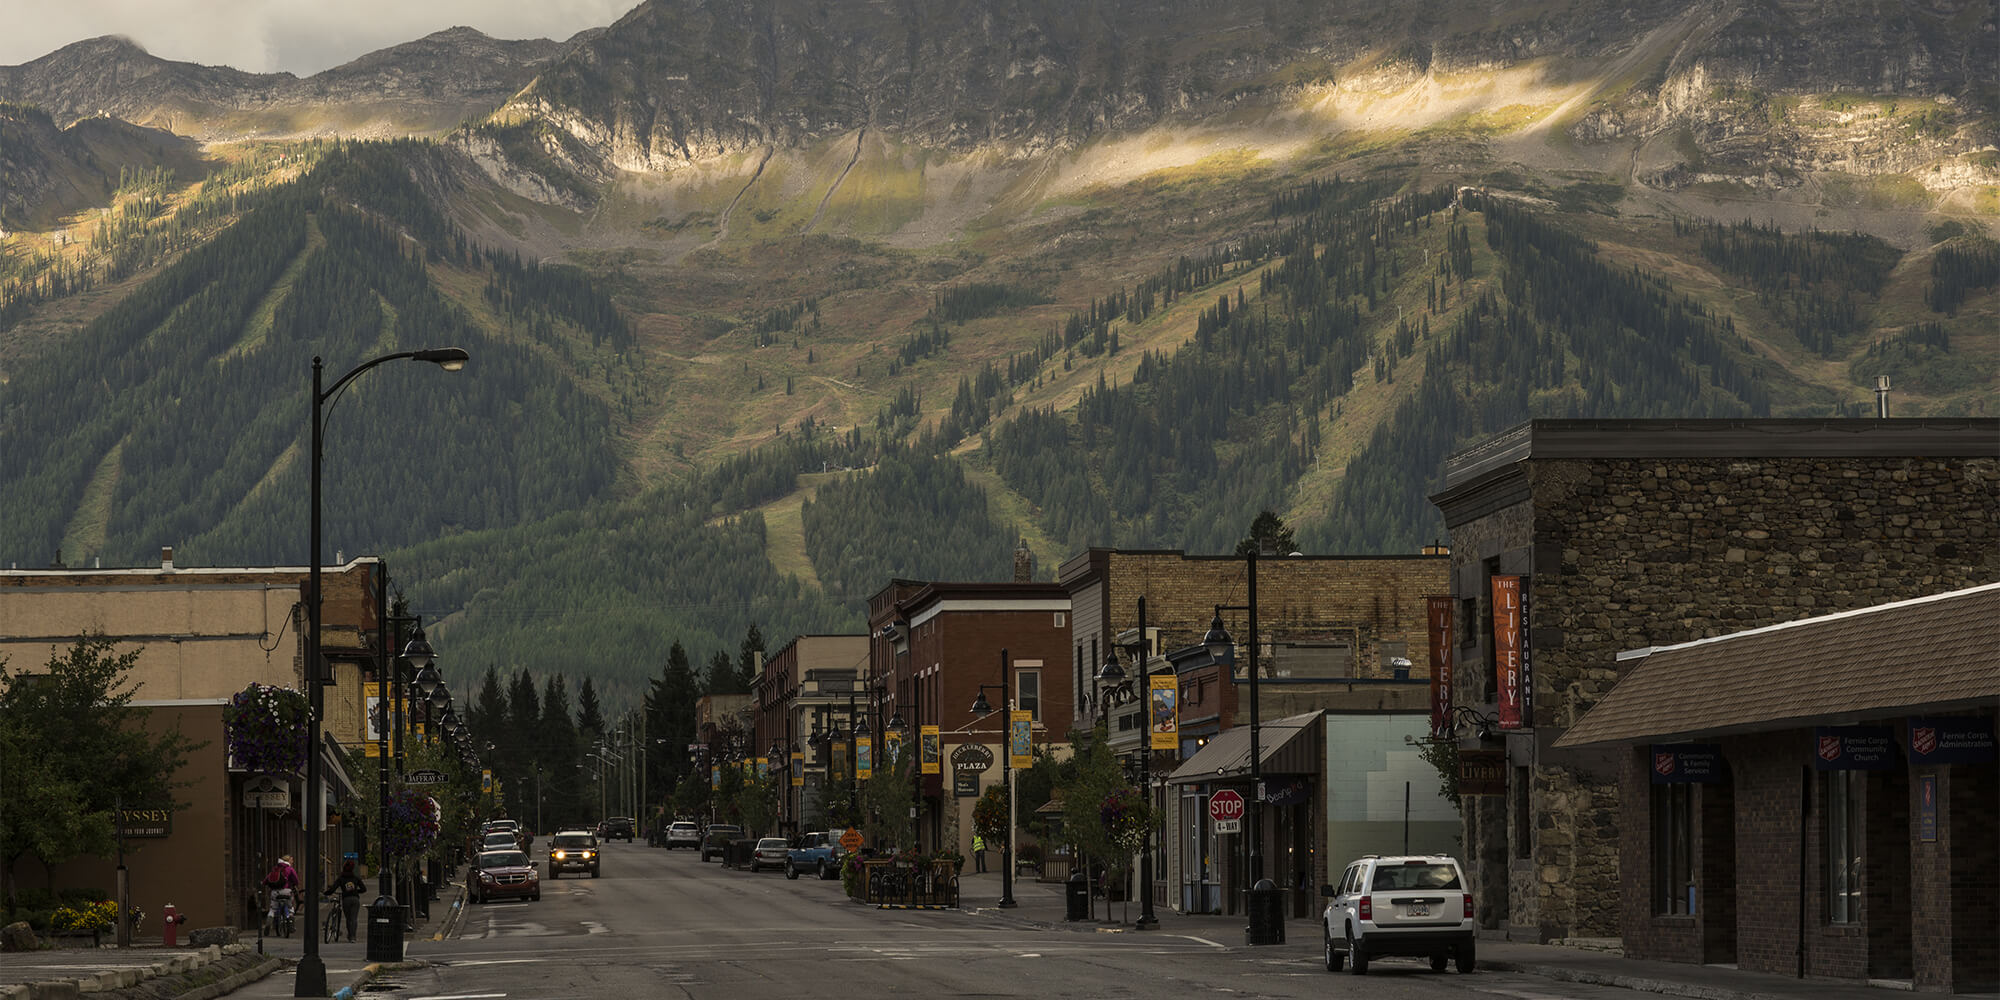 Downtown Fernie, BC at sunset.